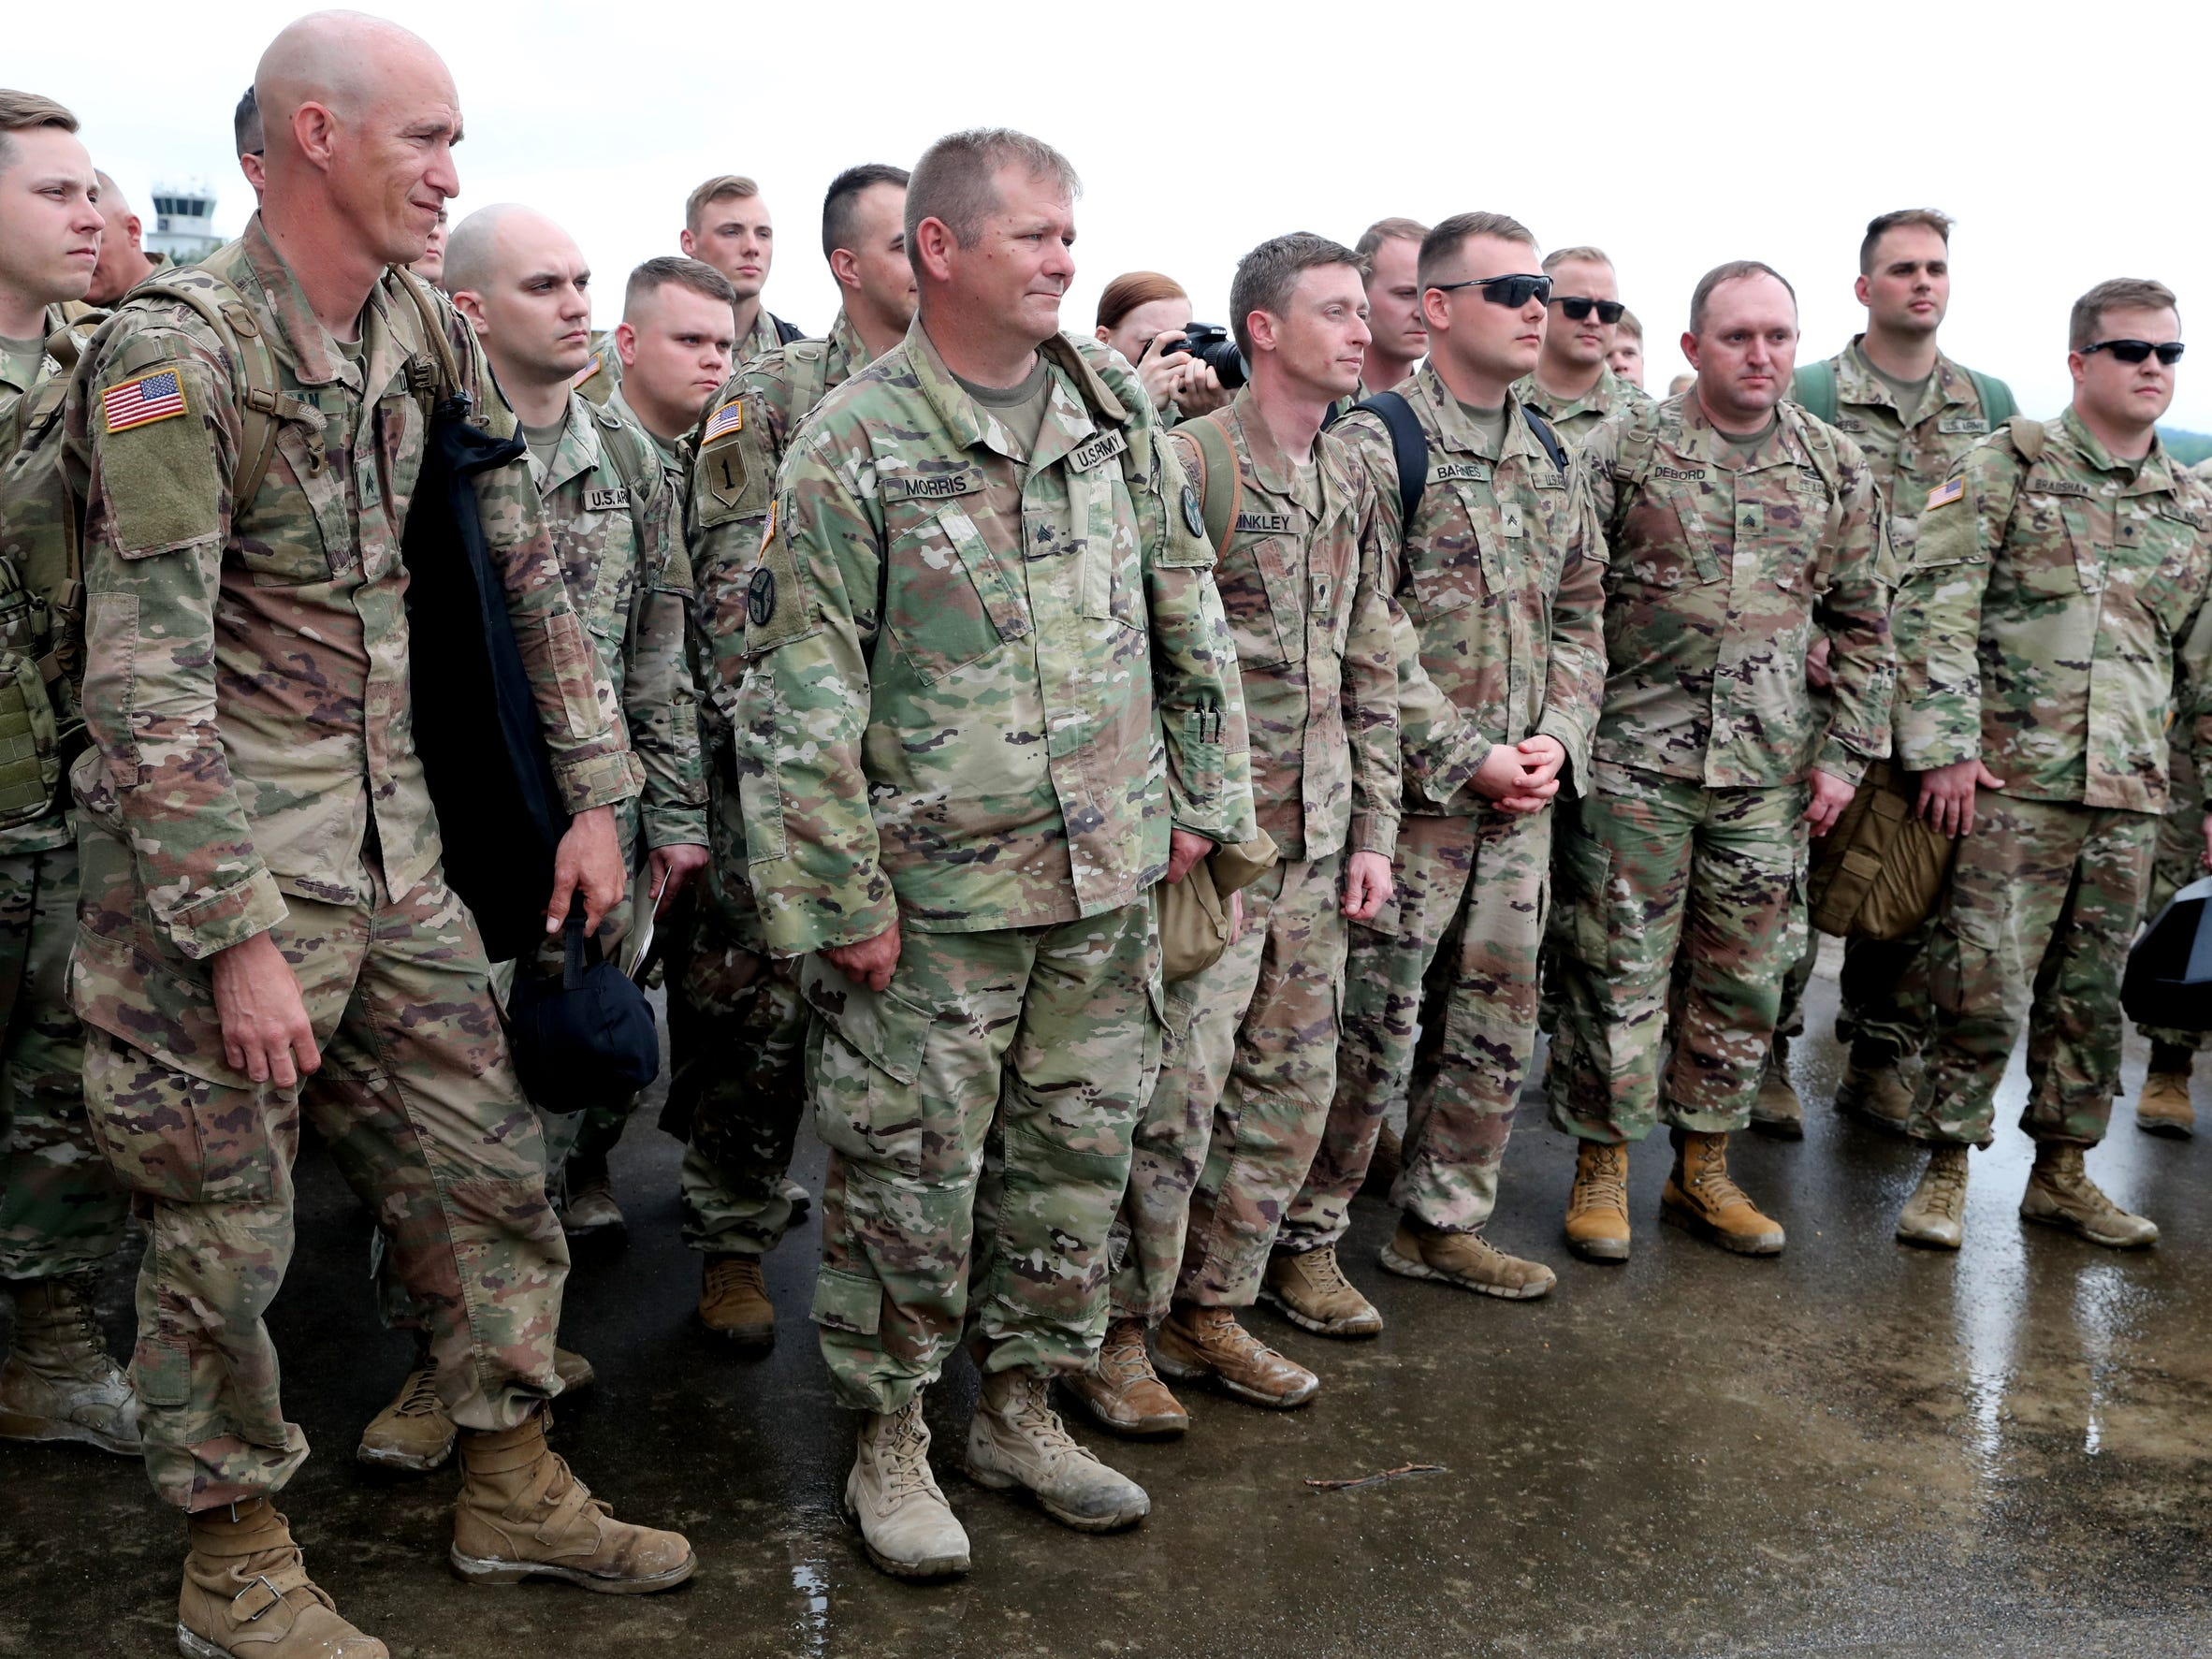 Soldiers with the 278th ACR returned to the Volunteer Training Site in Smyrna after serving  a 9 month overseas deployment on Thursday, May 9, 2019.